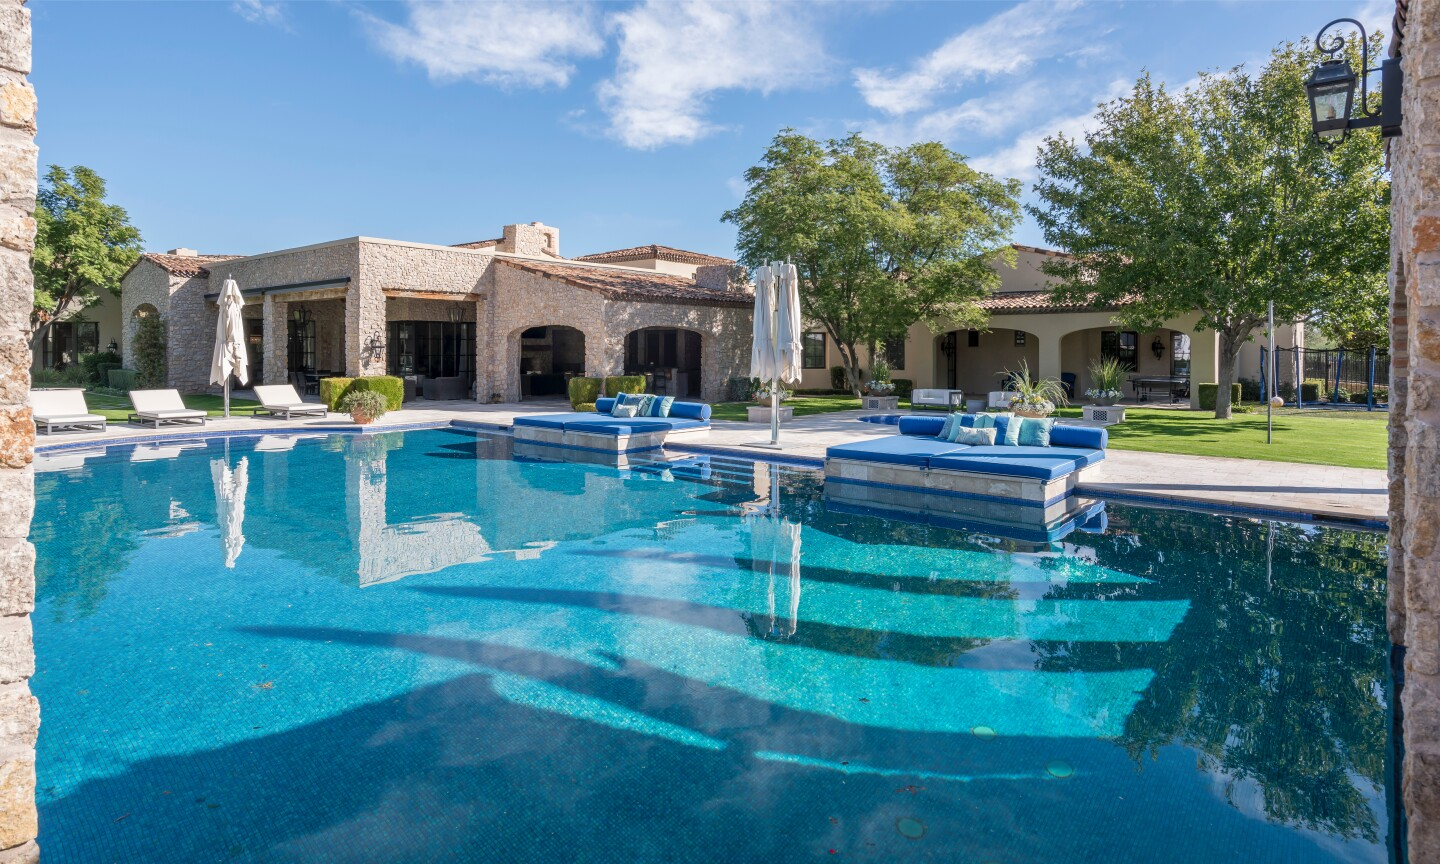 The five-acre estate holds a main house, guesthouse, Suns-themed basketball court, swimming pool, spa and grotto.